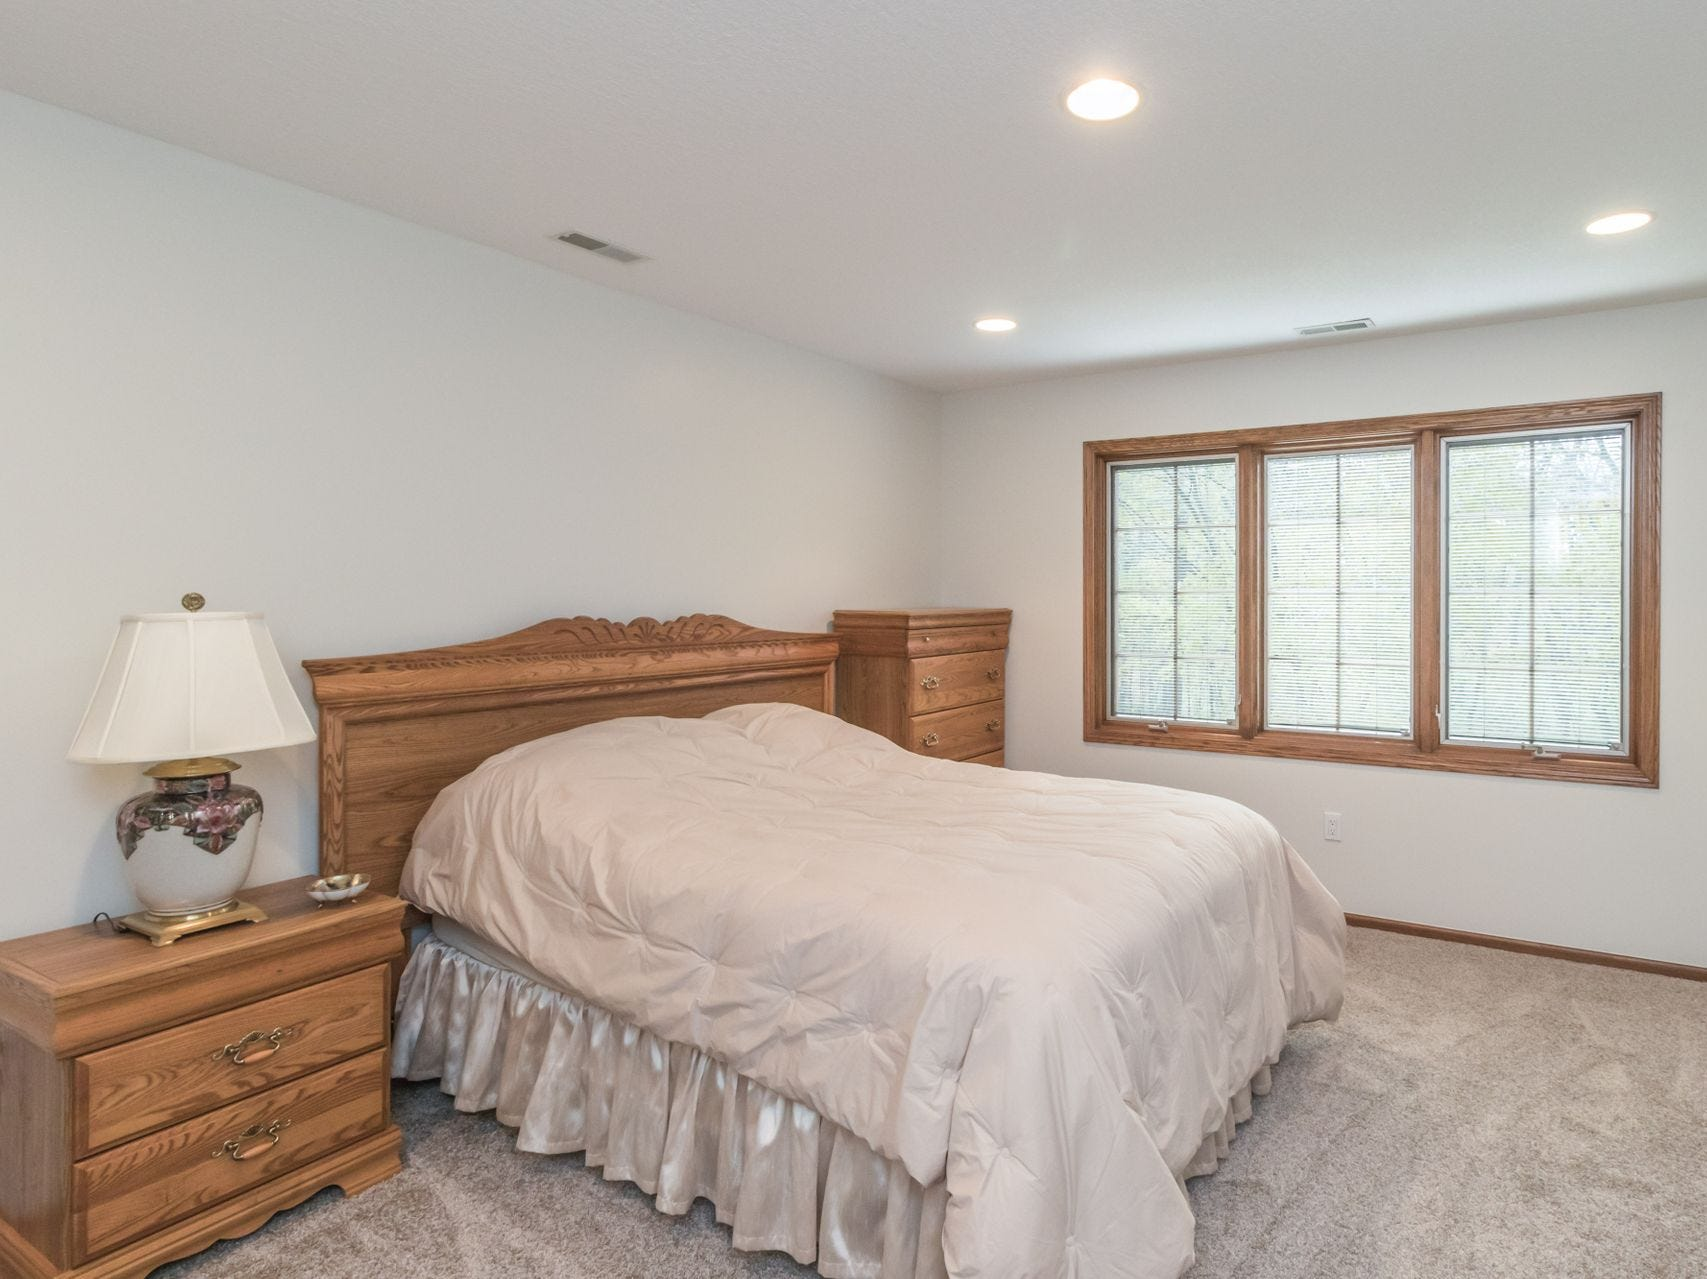 This home in the private residential golf community at Glen Oaks and spans more than 4,000 square feet of living space.